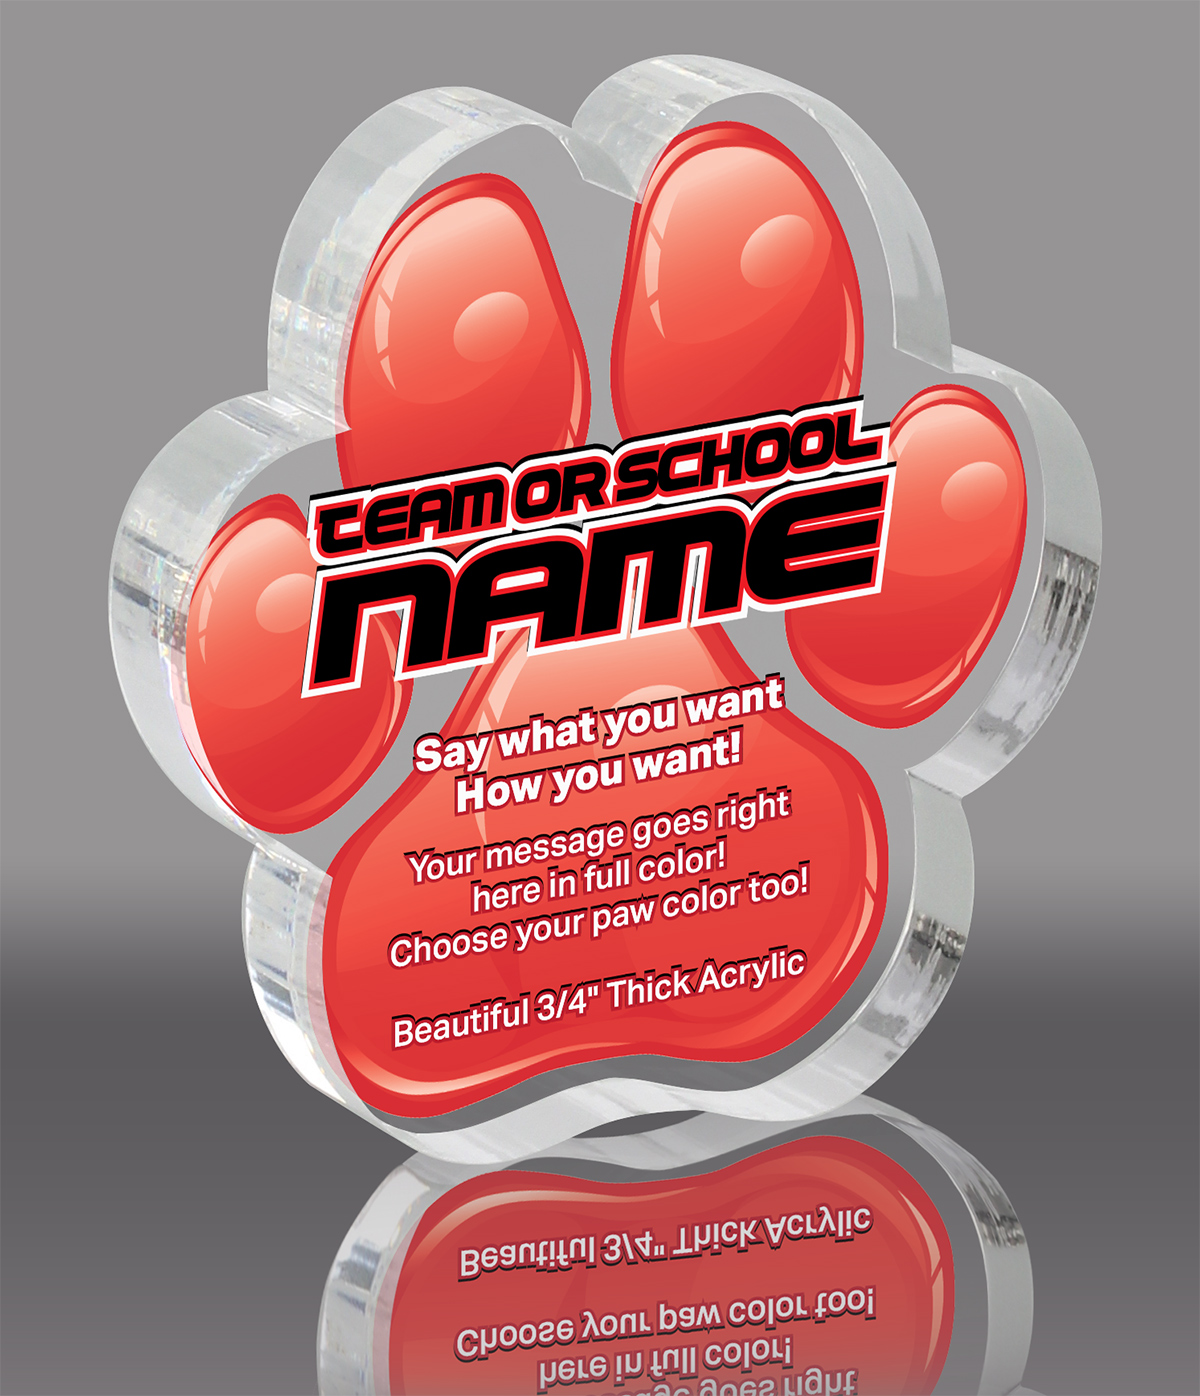 Red Acrylic ColorPaw- 3 inch